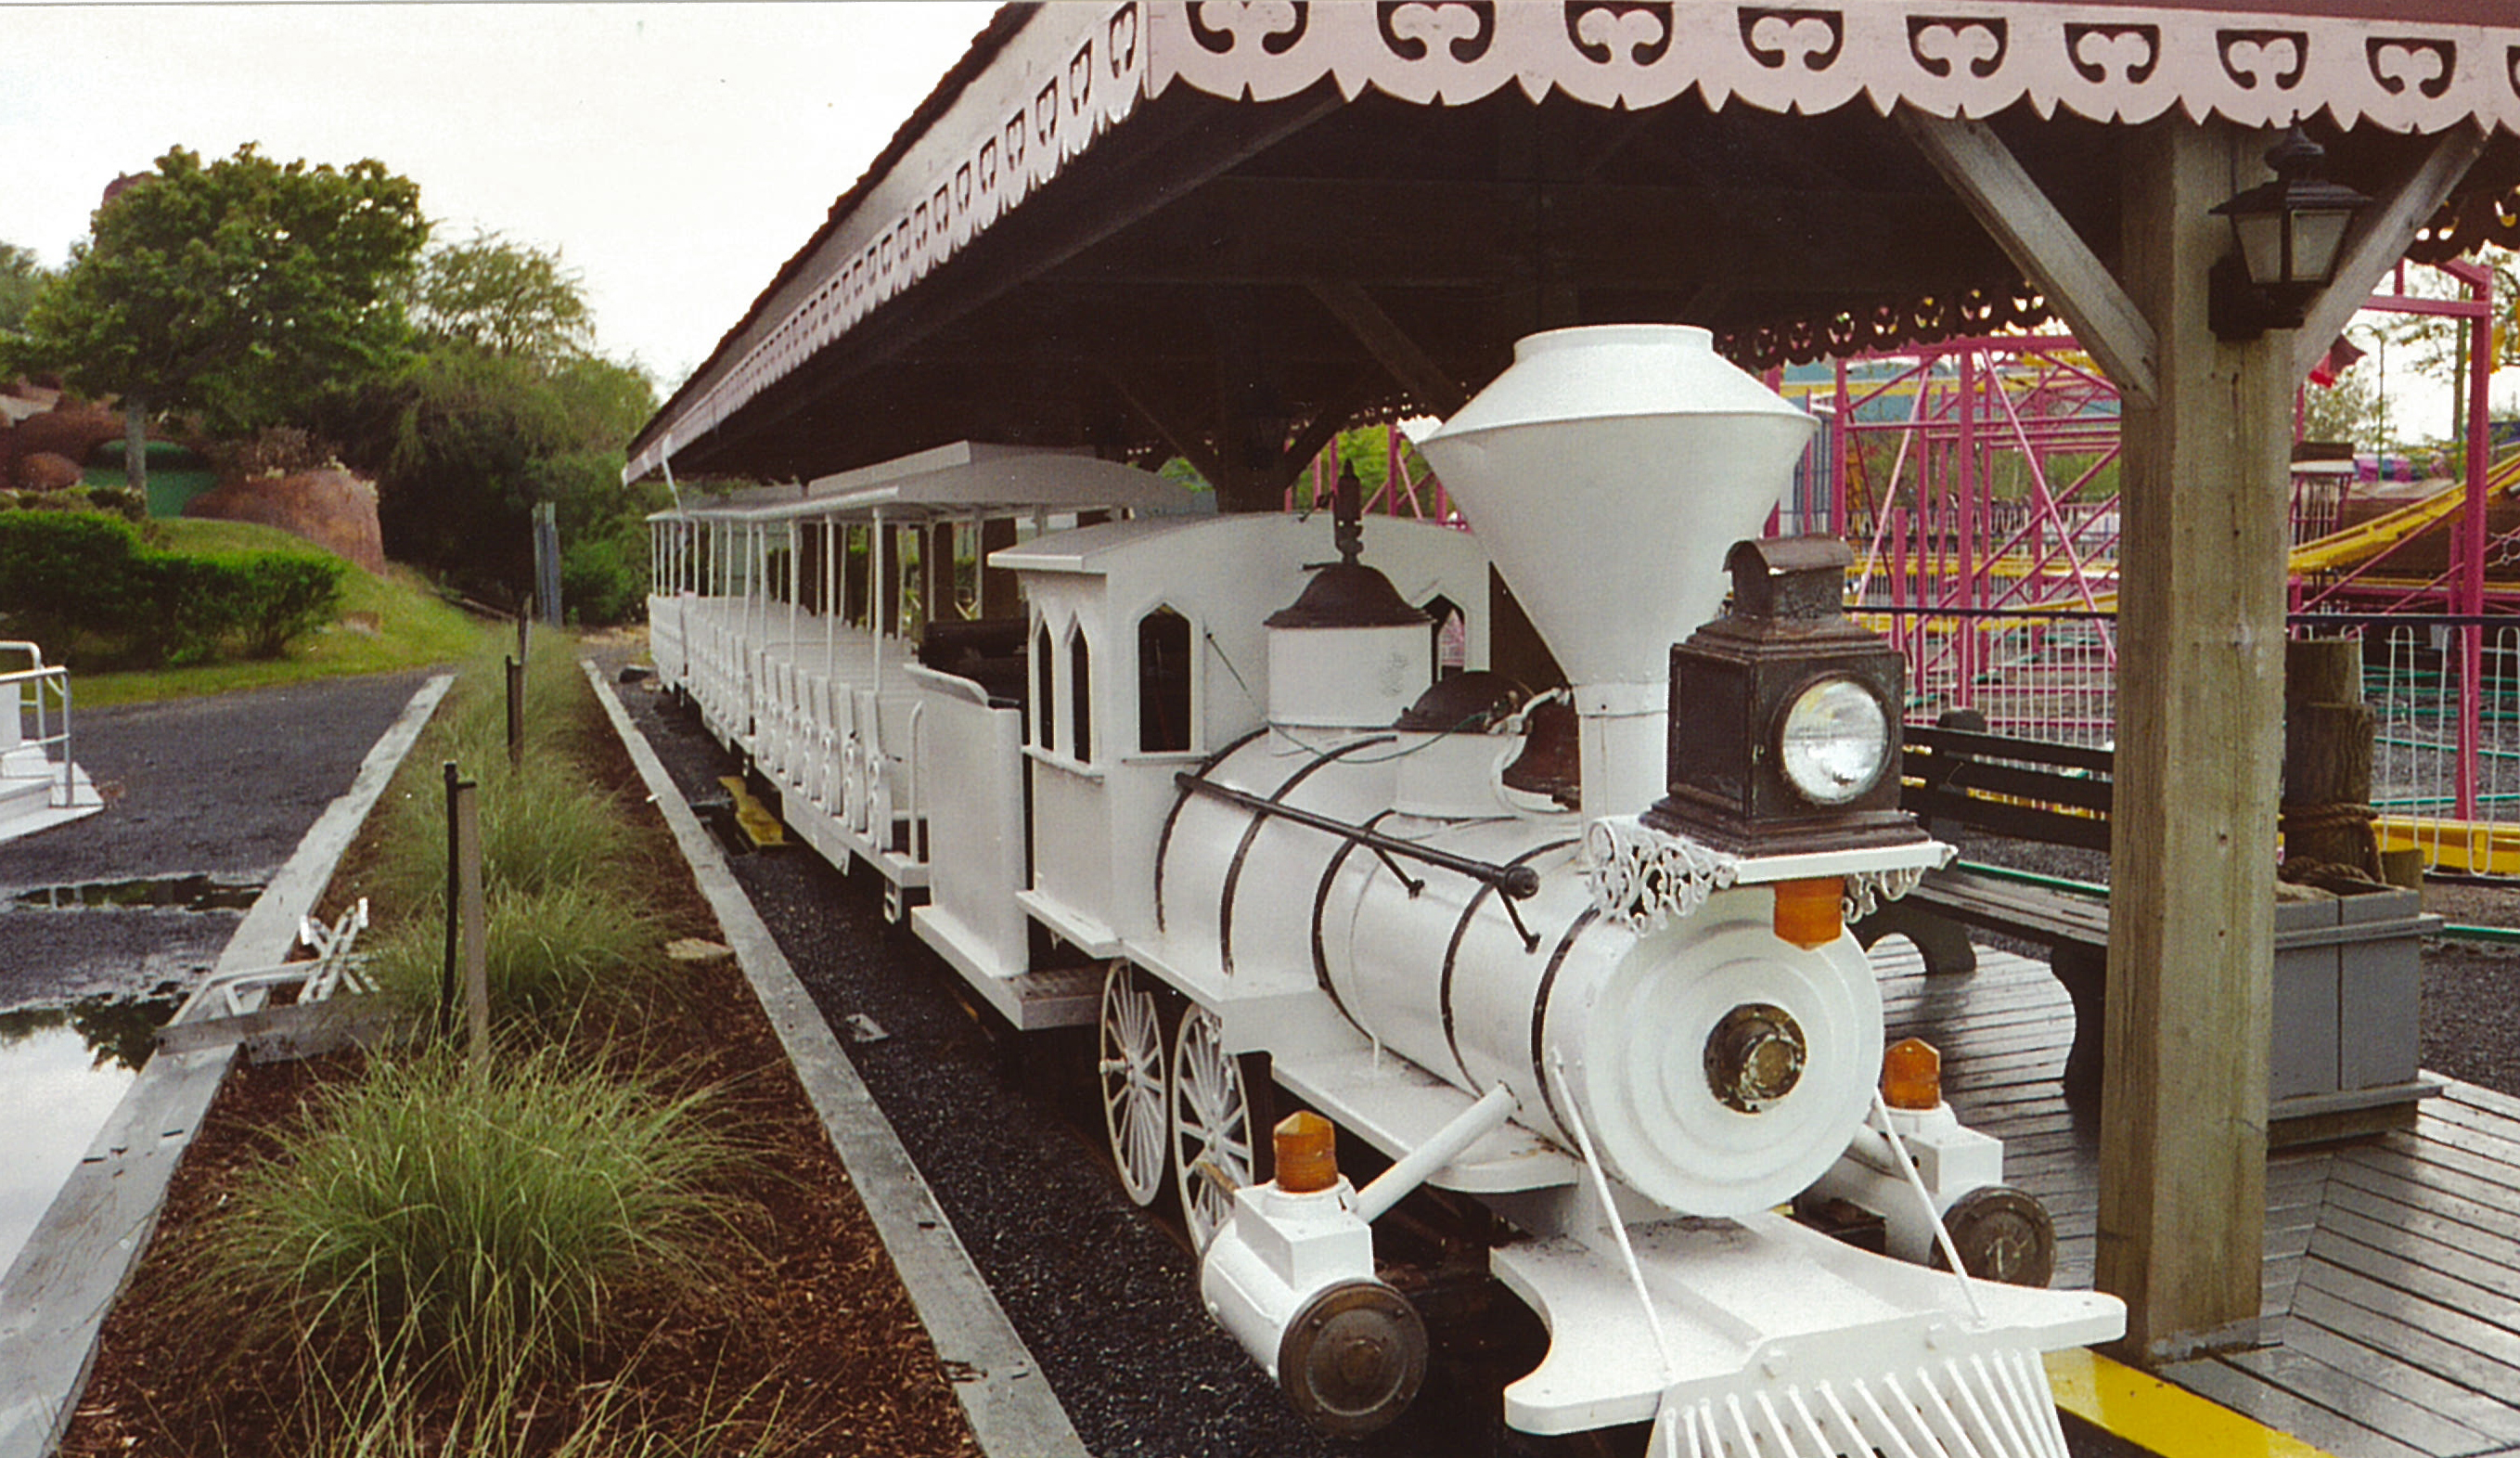 Train at Jolly Roger Park